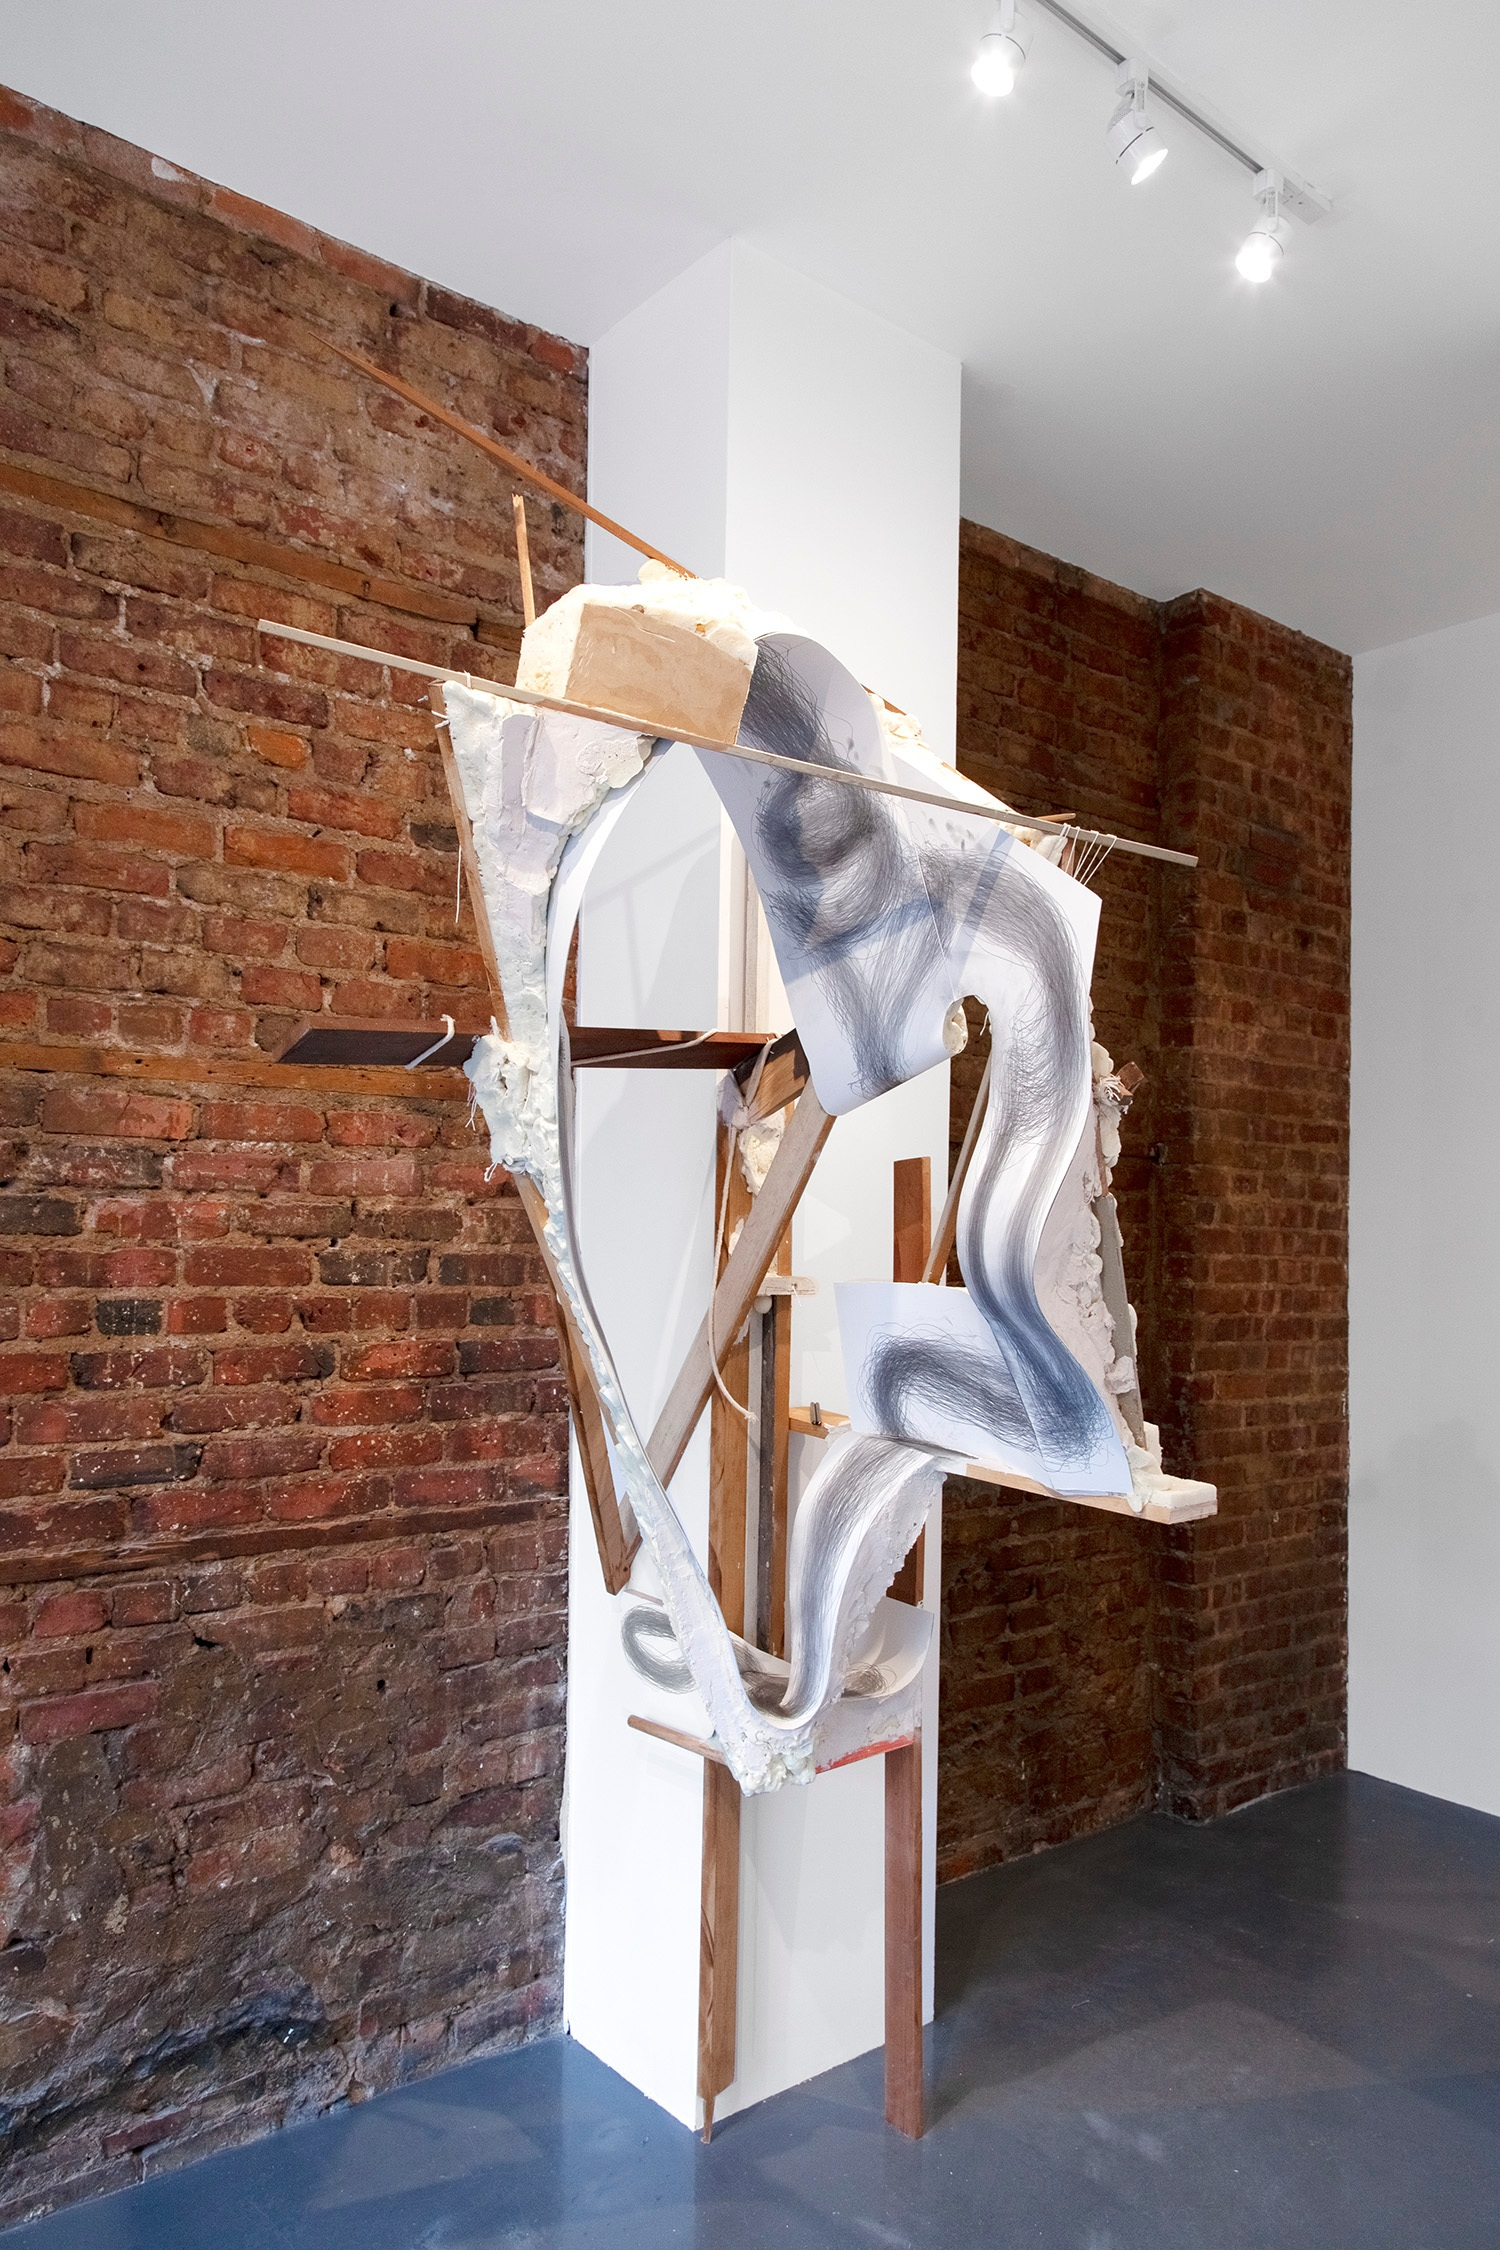 Supporting a continued gesture towards expanding sanctuary , 2019, Performance with graphite on paper and mixed media (reclaimed wood, rope, plaster, foam and aluminum), 90 x 42 x 40 in (228.6 x 106.7 x 101.6 cm)